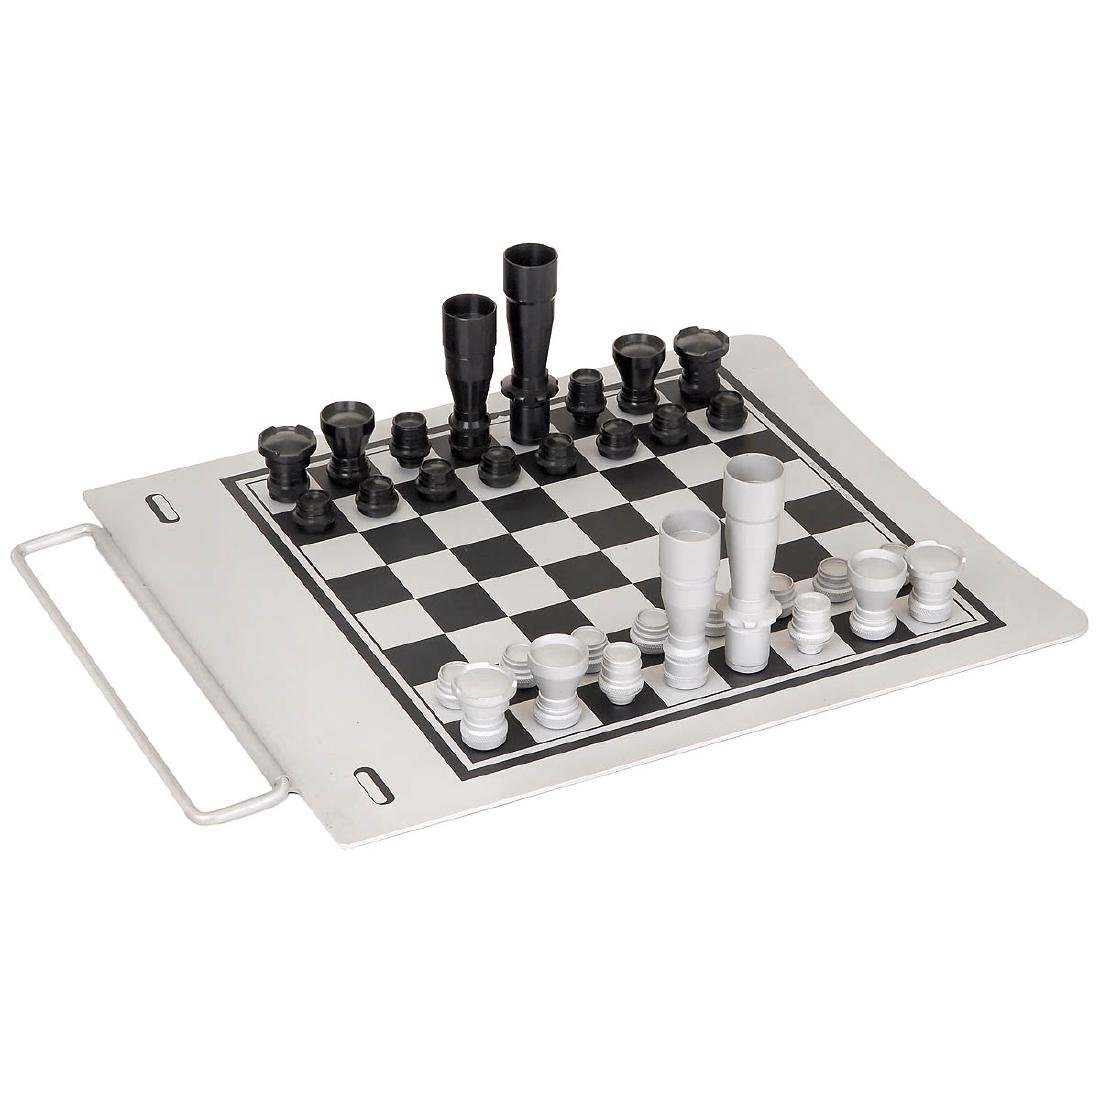 Lens-form Chess Figures